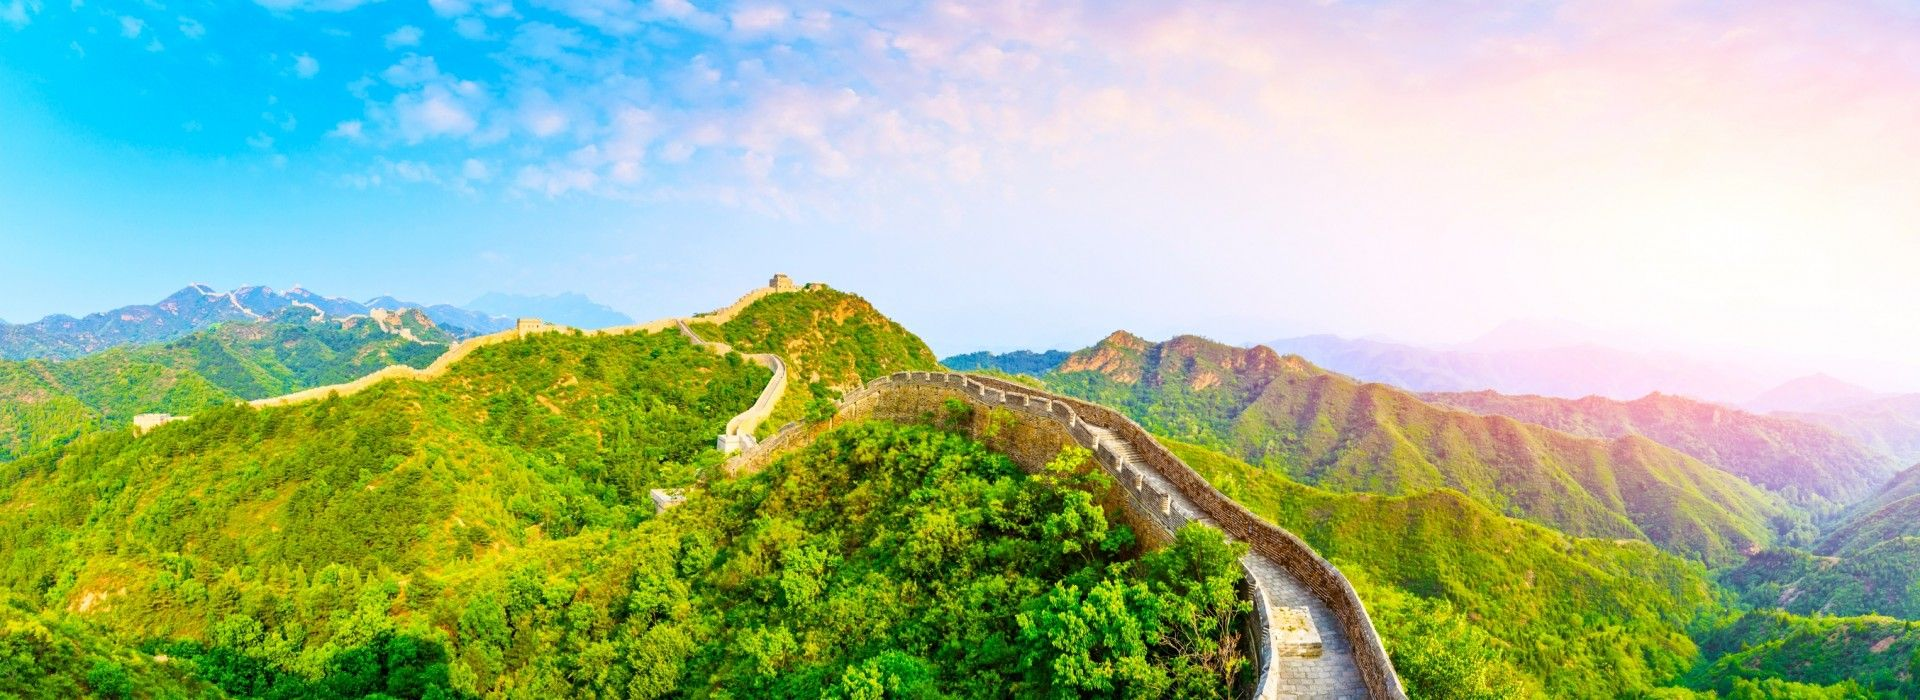 Sightseeing, attractions, culture and history Tours in Chengdu